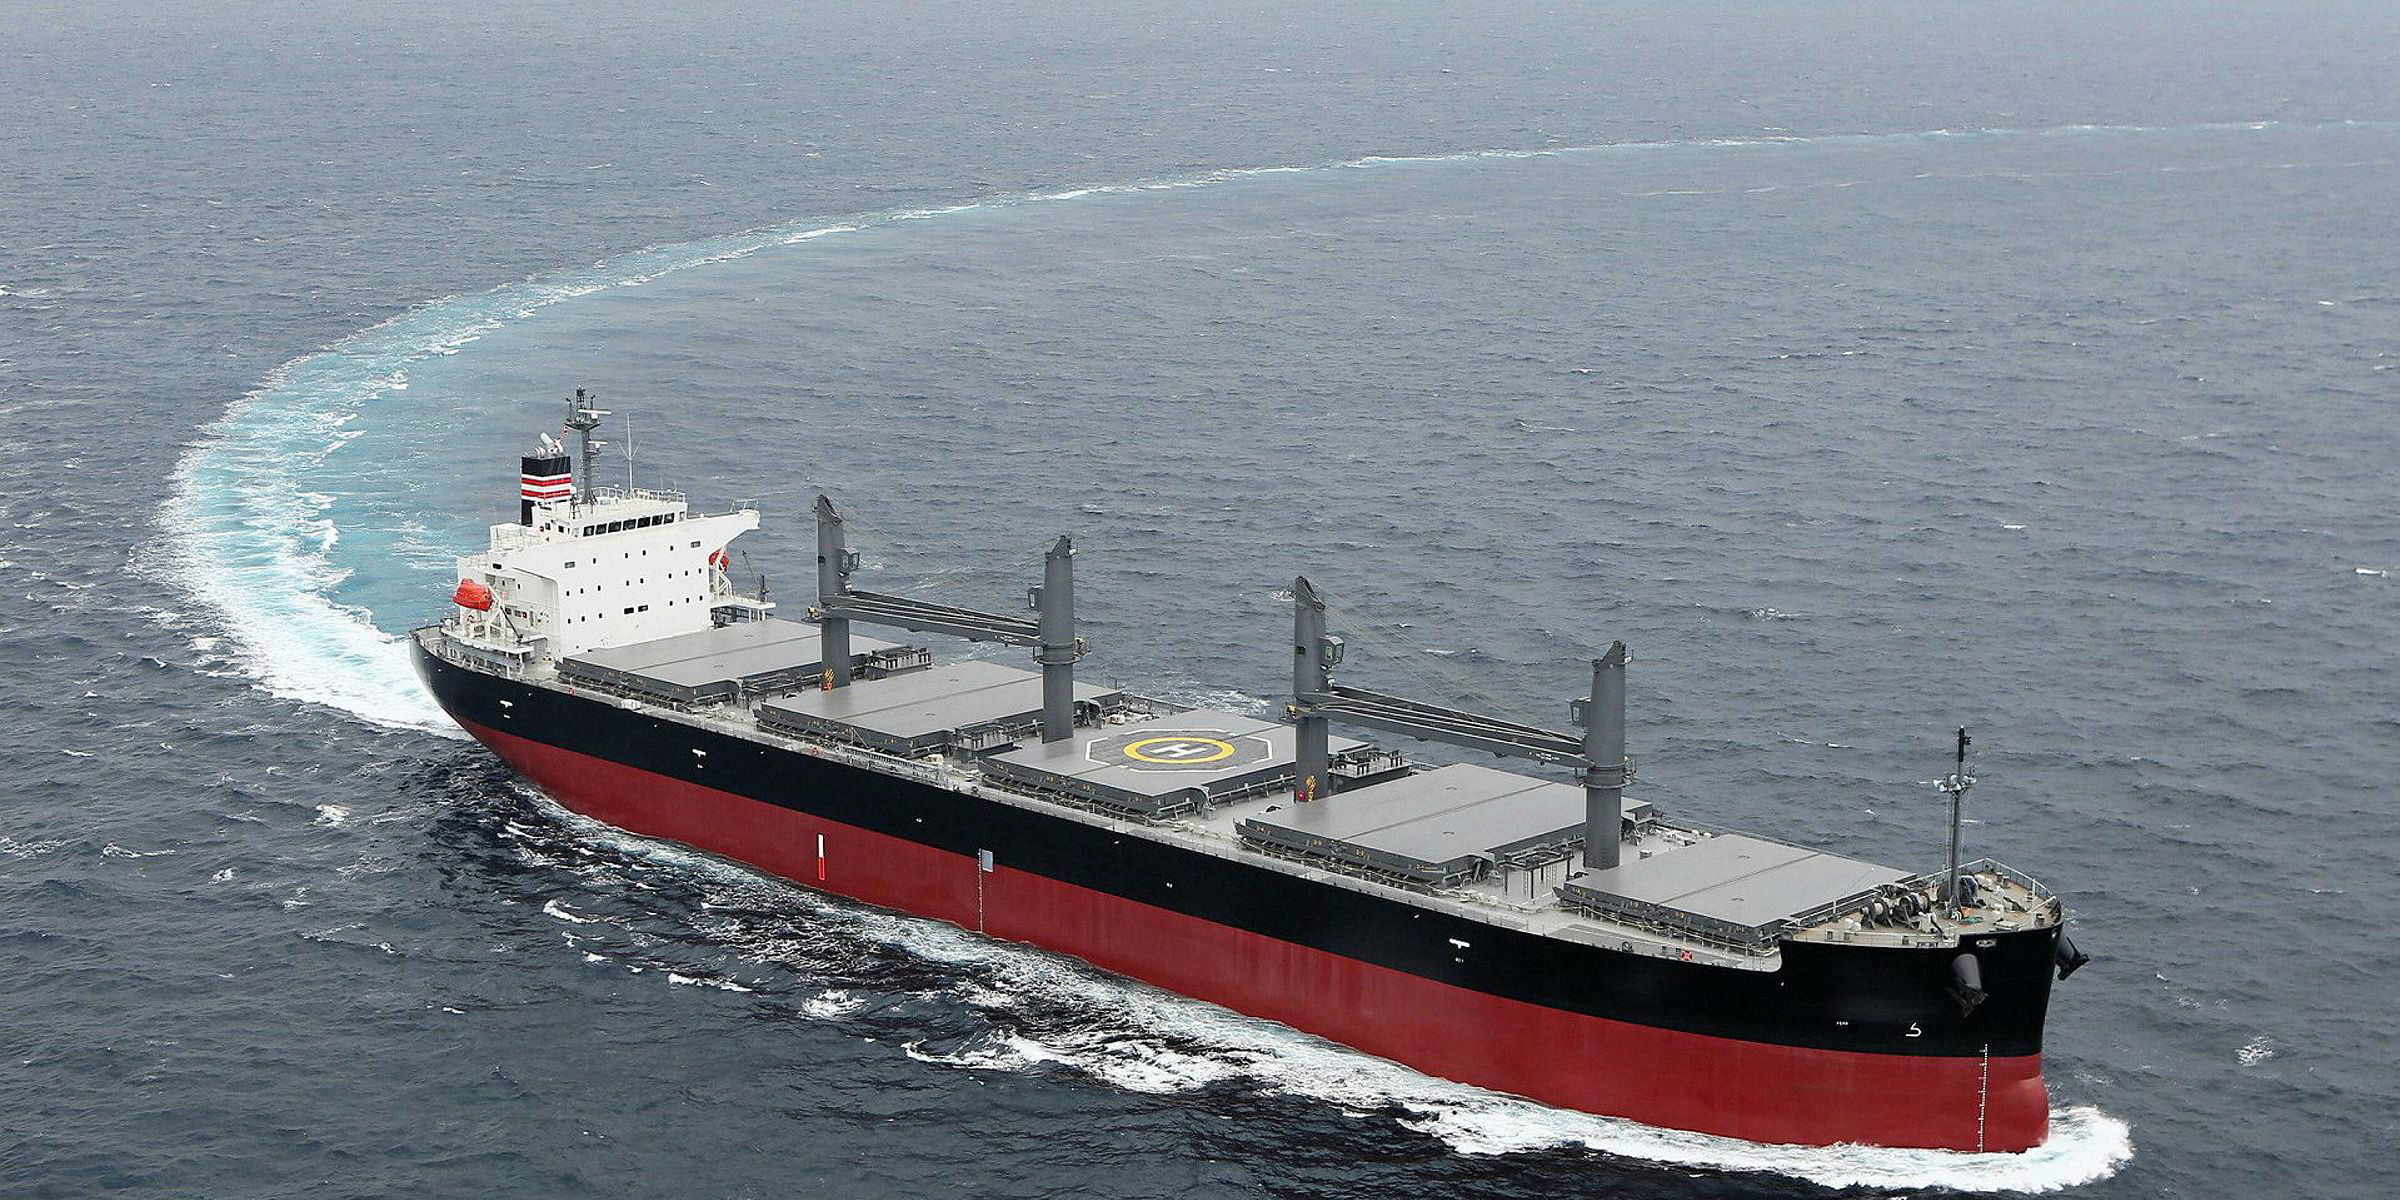 Bulkers take lion's share in scrubber fits | TradeWinds